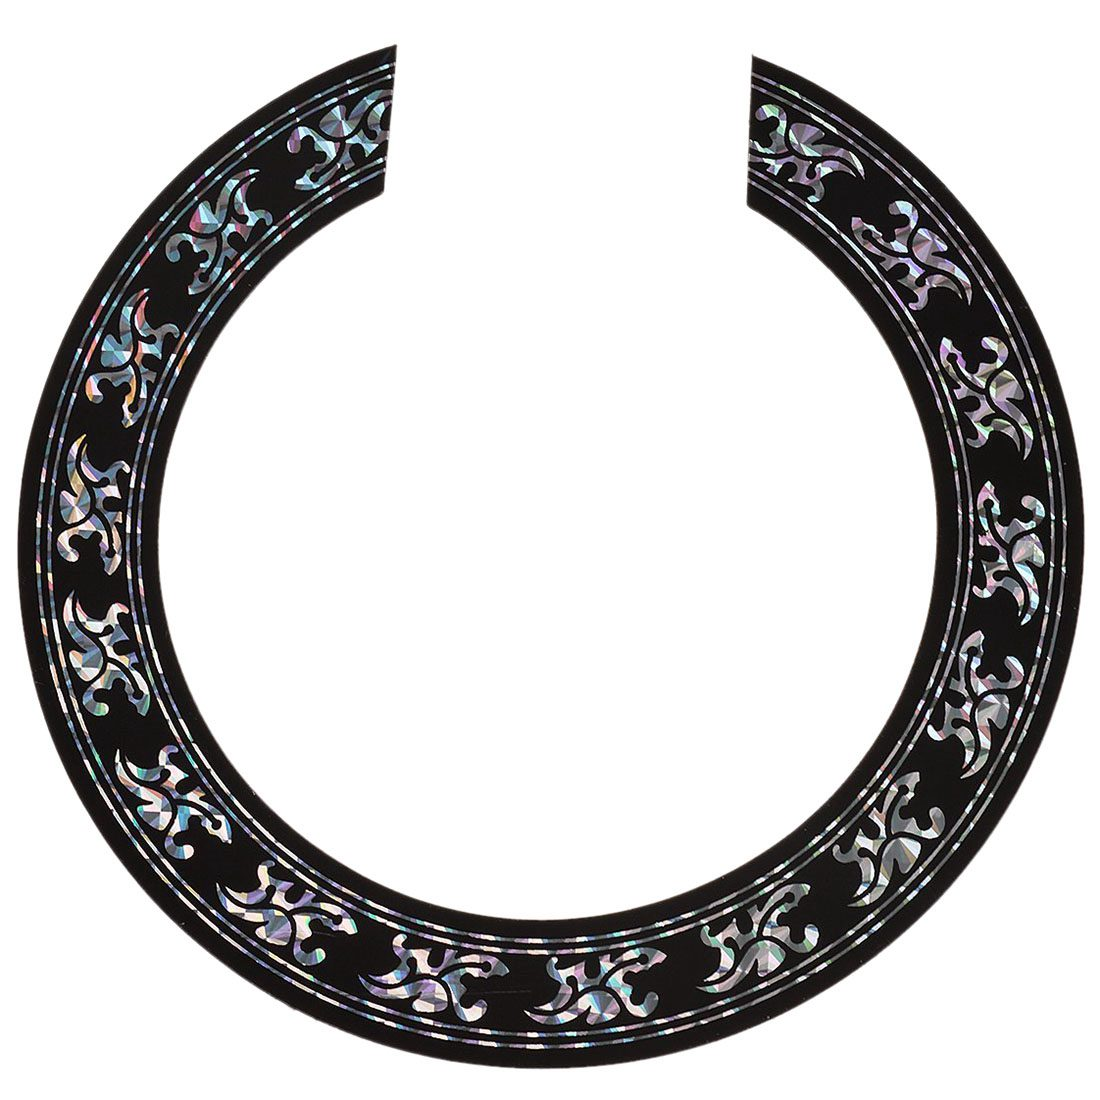 New Sound Hole Rose Decal Sticker For Acoustic Classical Guitar Parts Black+Silver